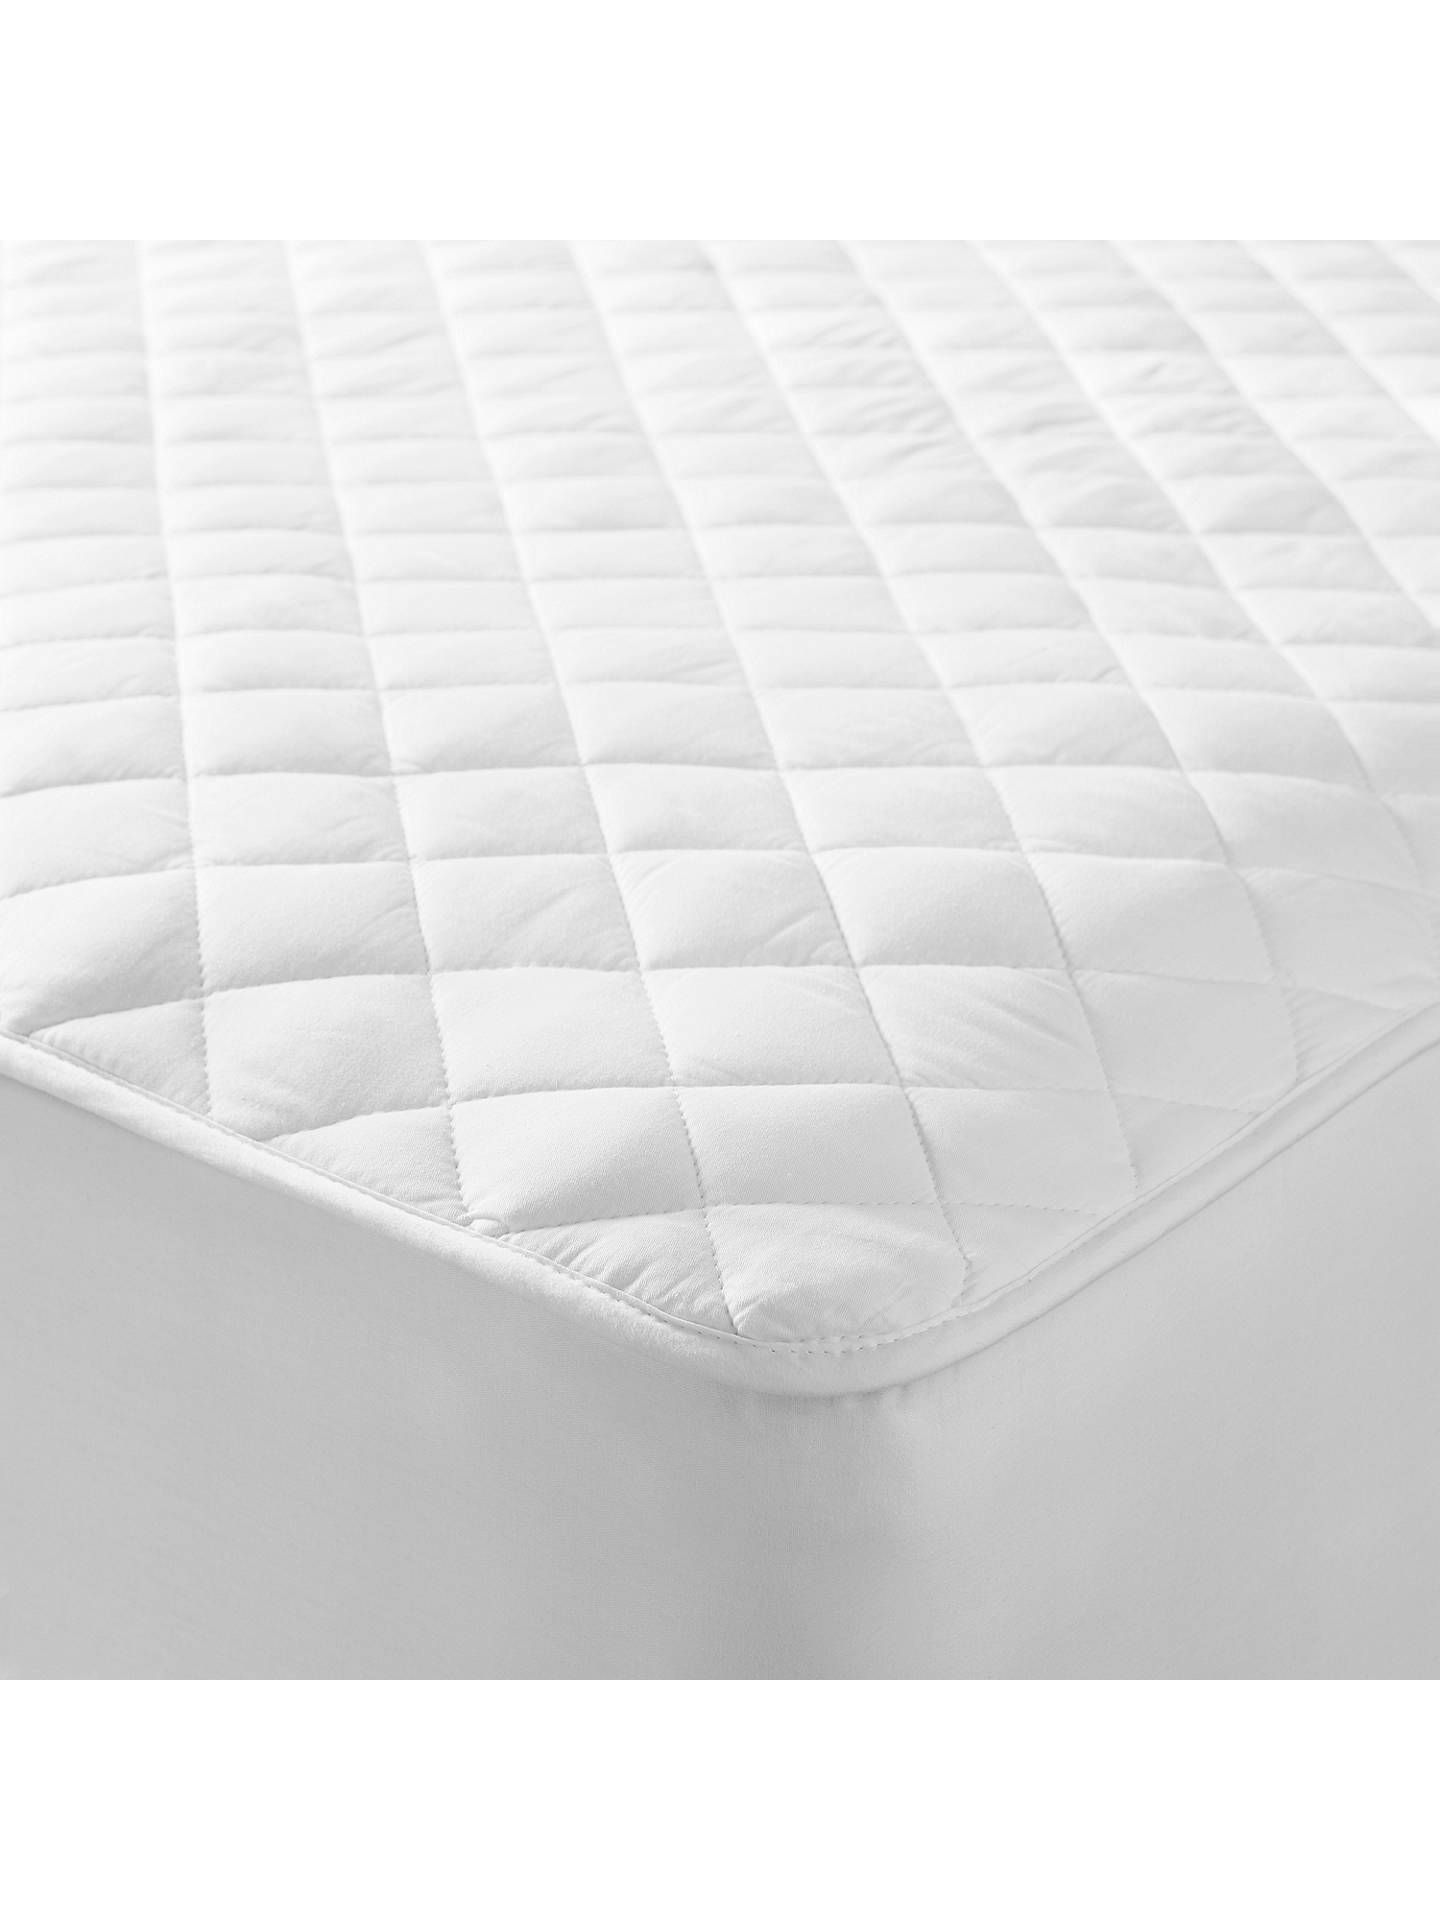 John Lewis Partners Natural Cotton Quilted Mattress Protector In 2020 Mattress Protector Mattress Cotton Quilts